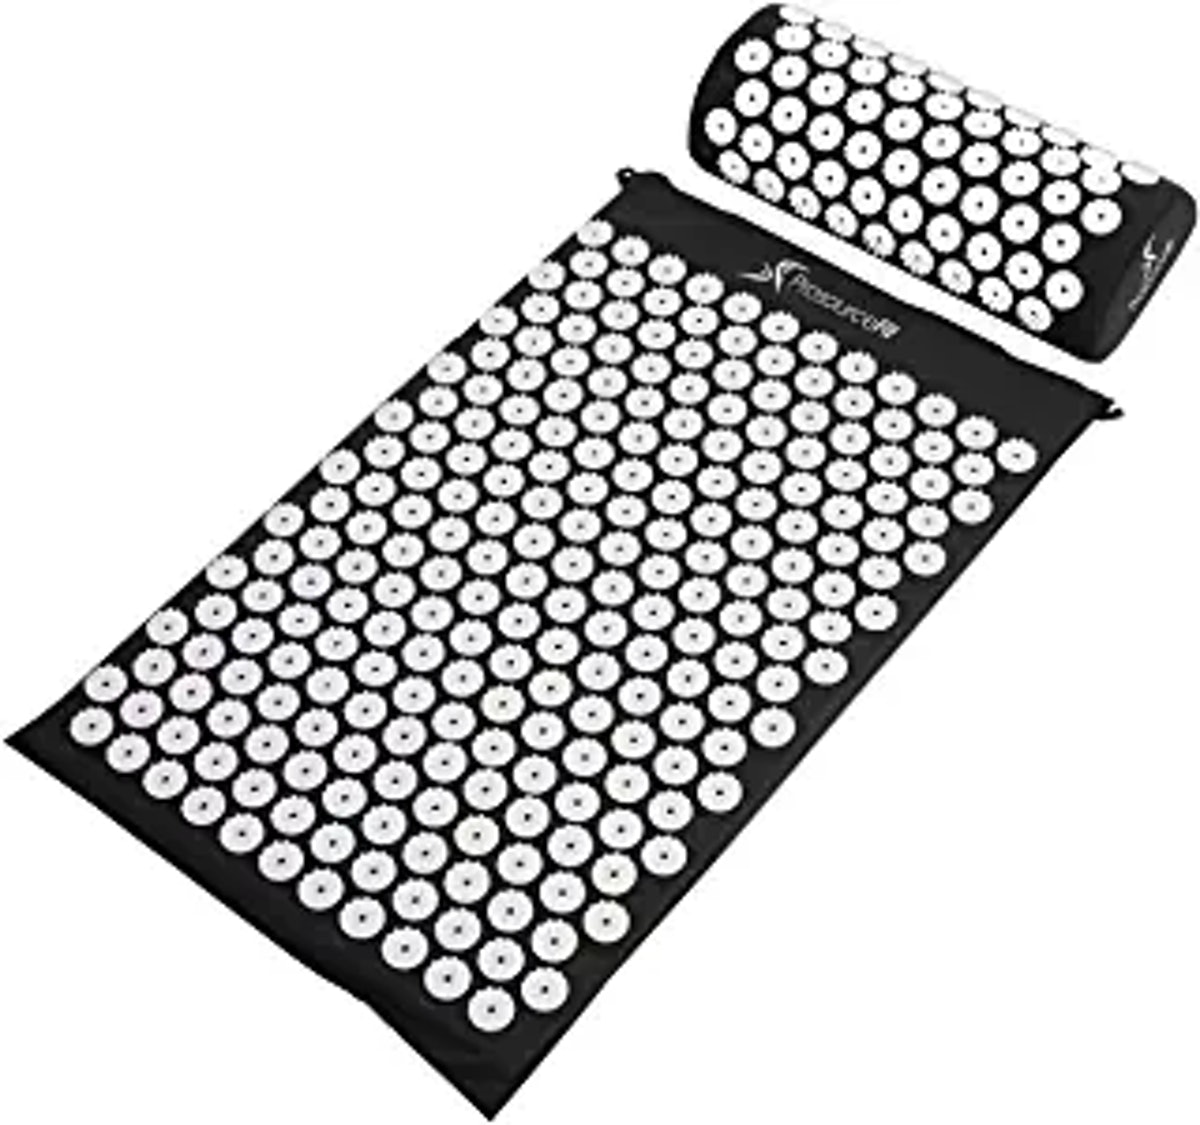 Prosource Fit Acupressure Mat and Pillow Set (2 Pieces)